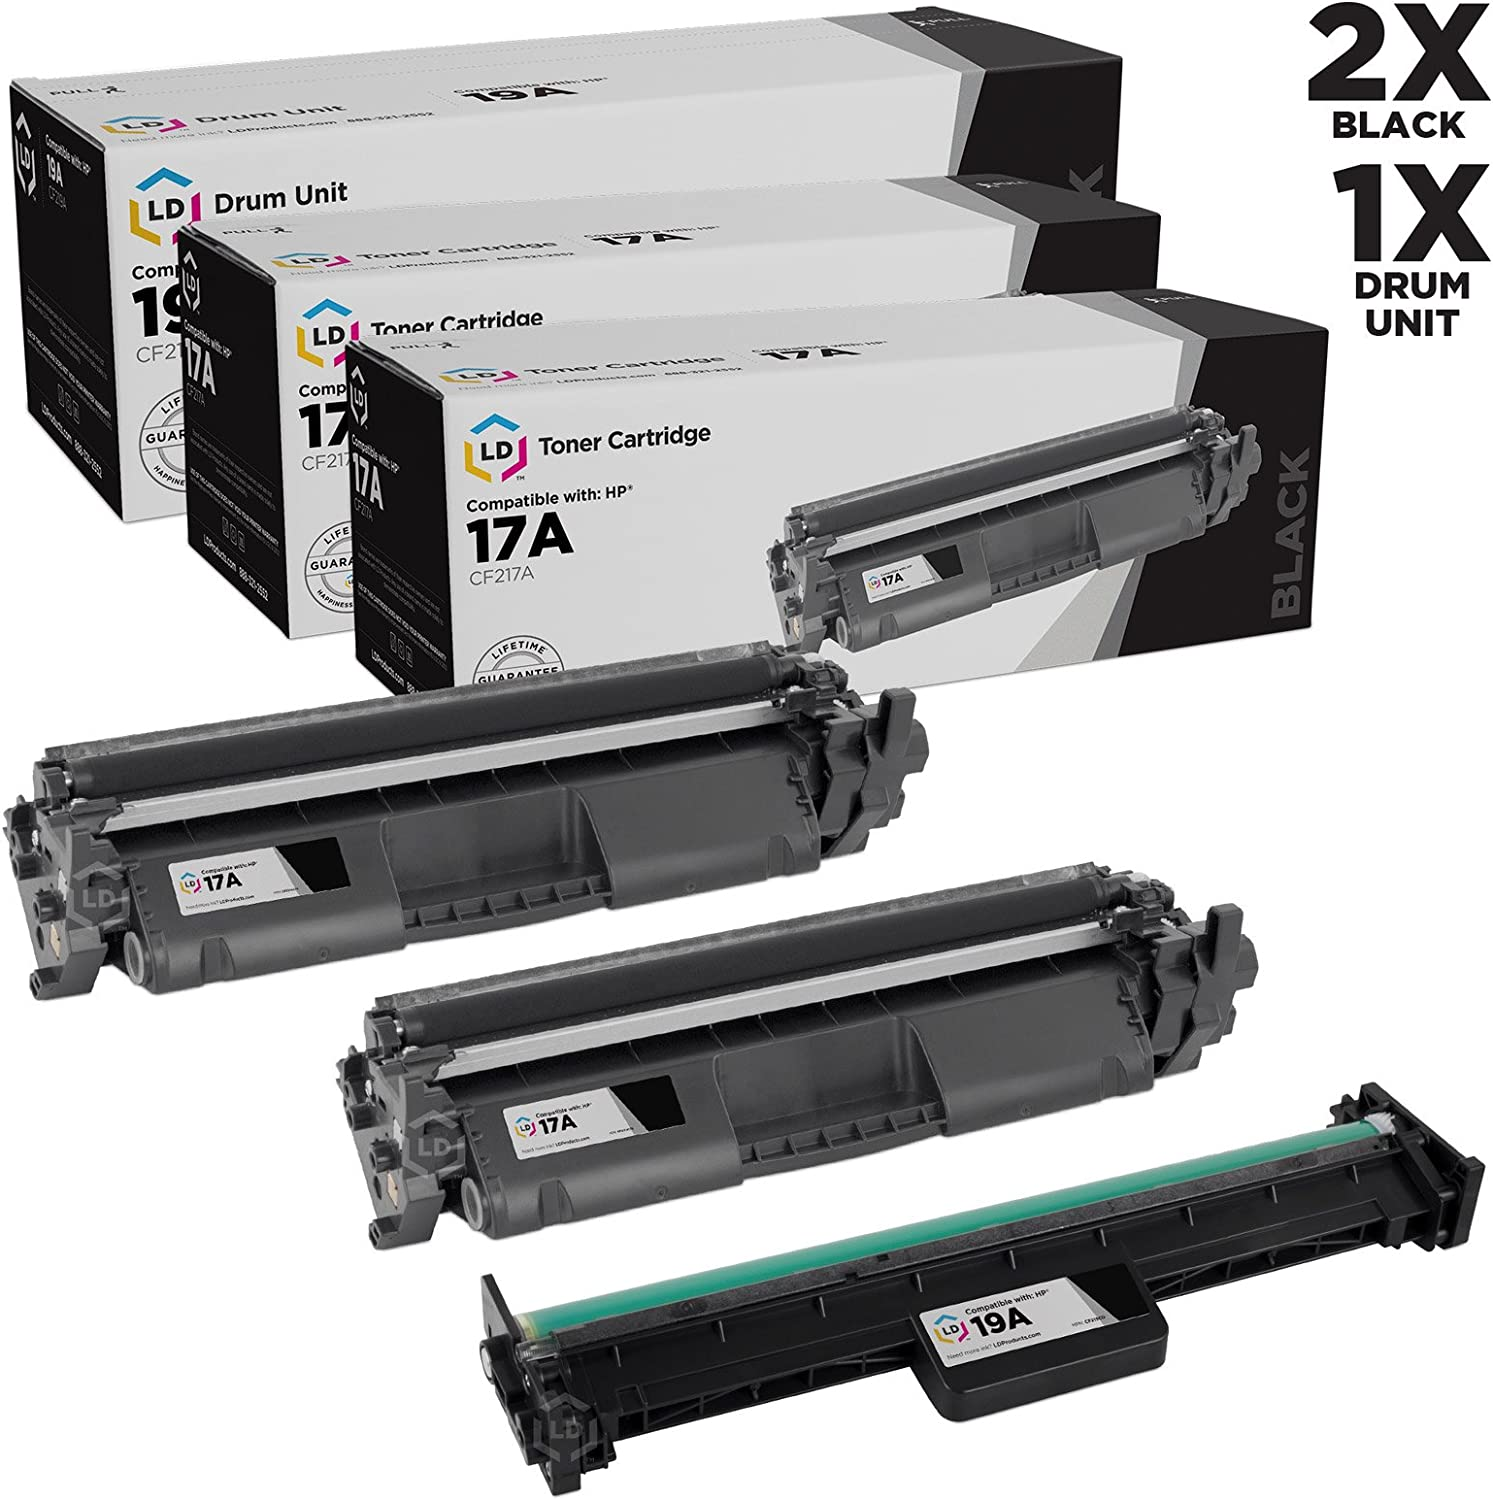 LD Compatible Toner & Drum Cartridge Replacements for HP 17A CF217A & HP 19A CF219A (2 Toners, 1 Drum, 3-Pack)